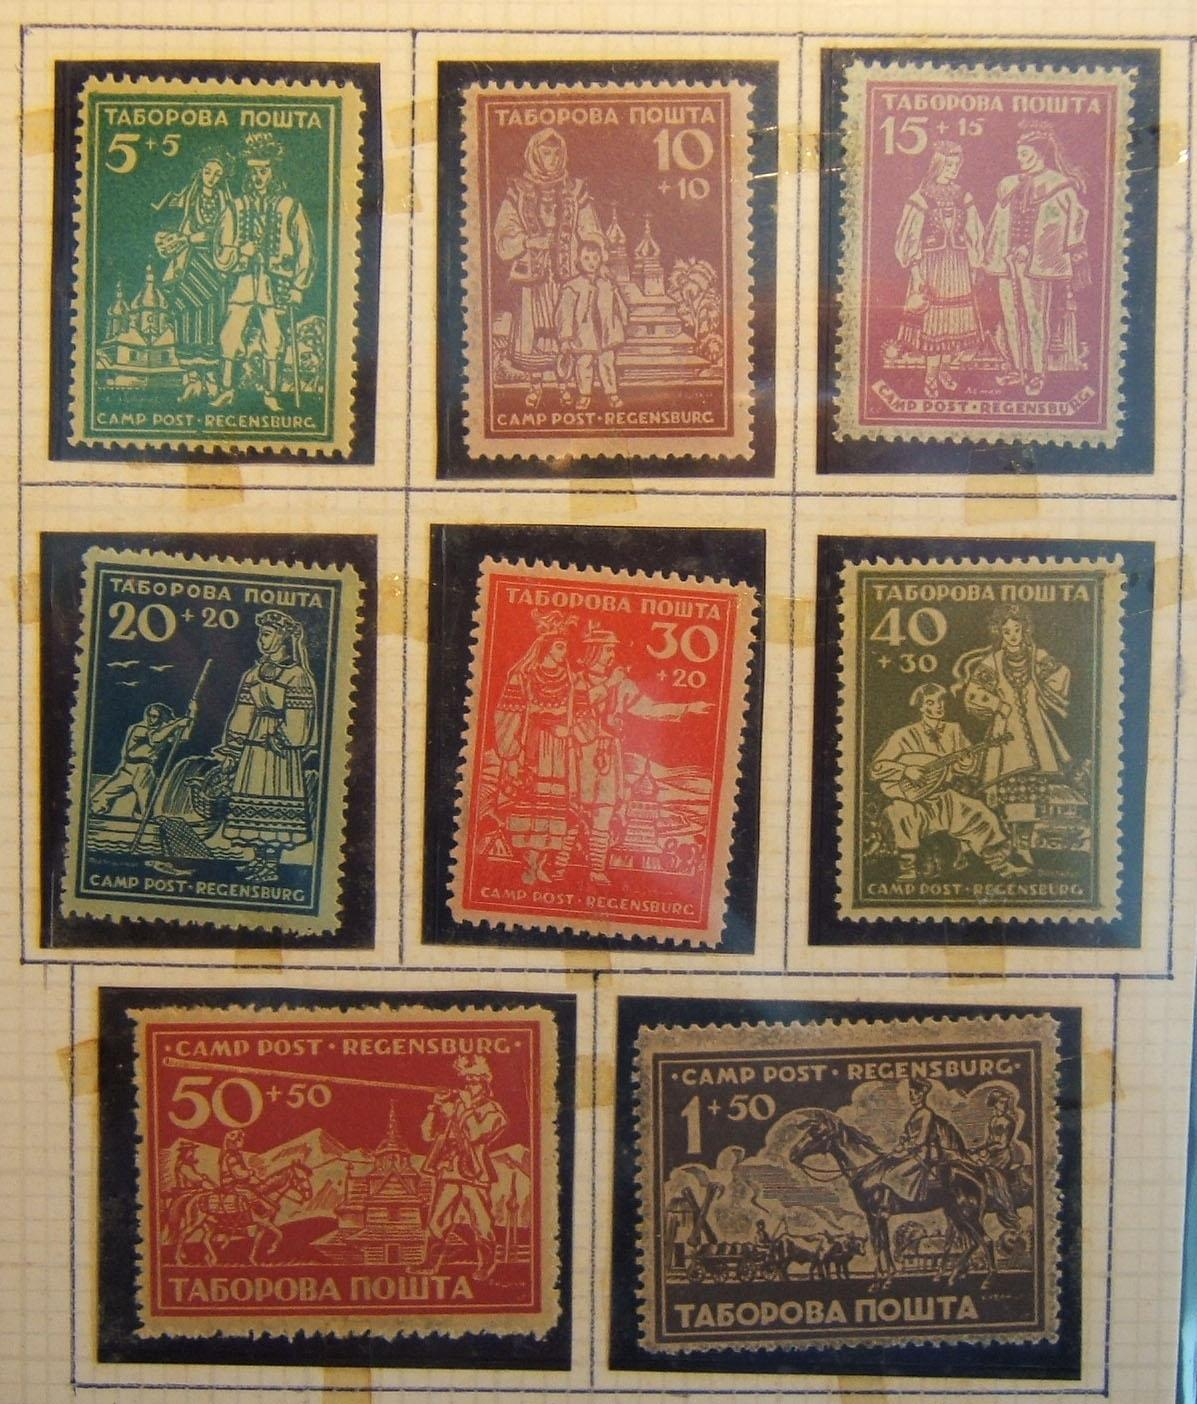 Regensburg Camp Post 1947 national costume series, perf MNH (9-18)